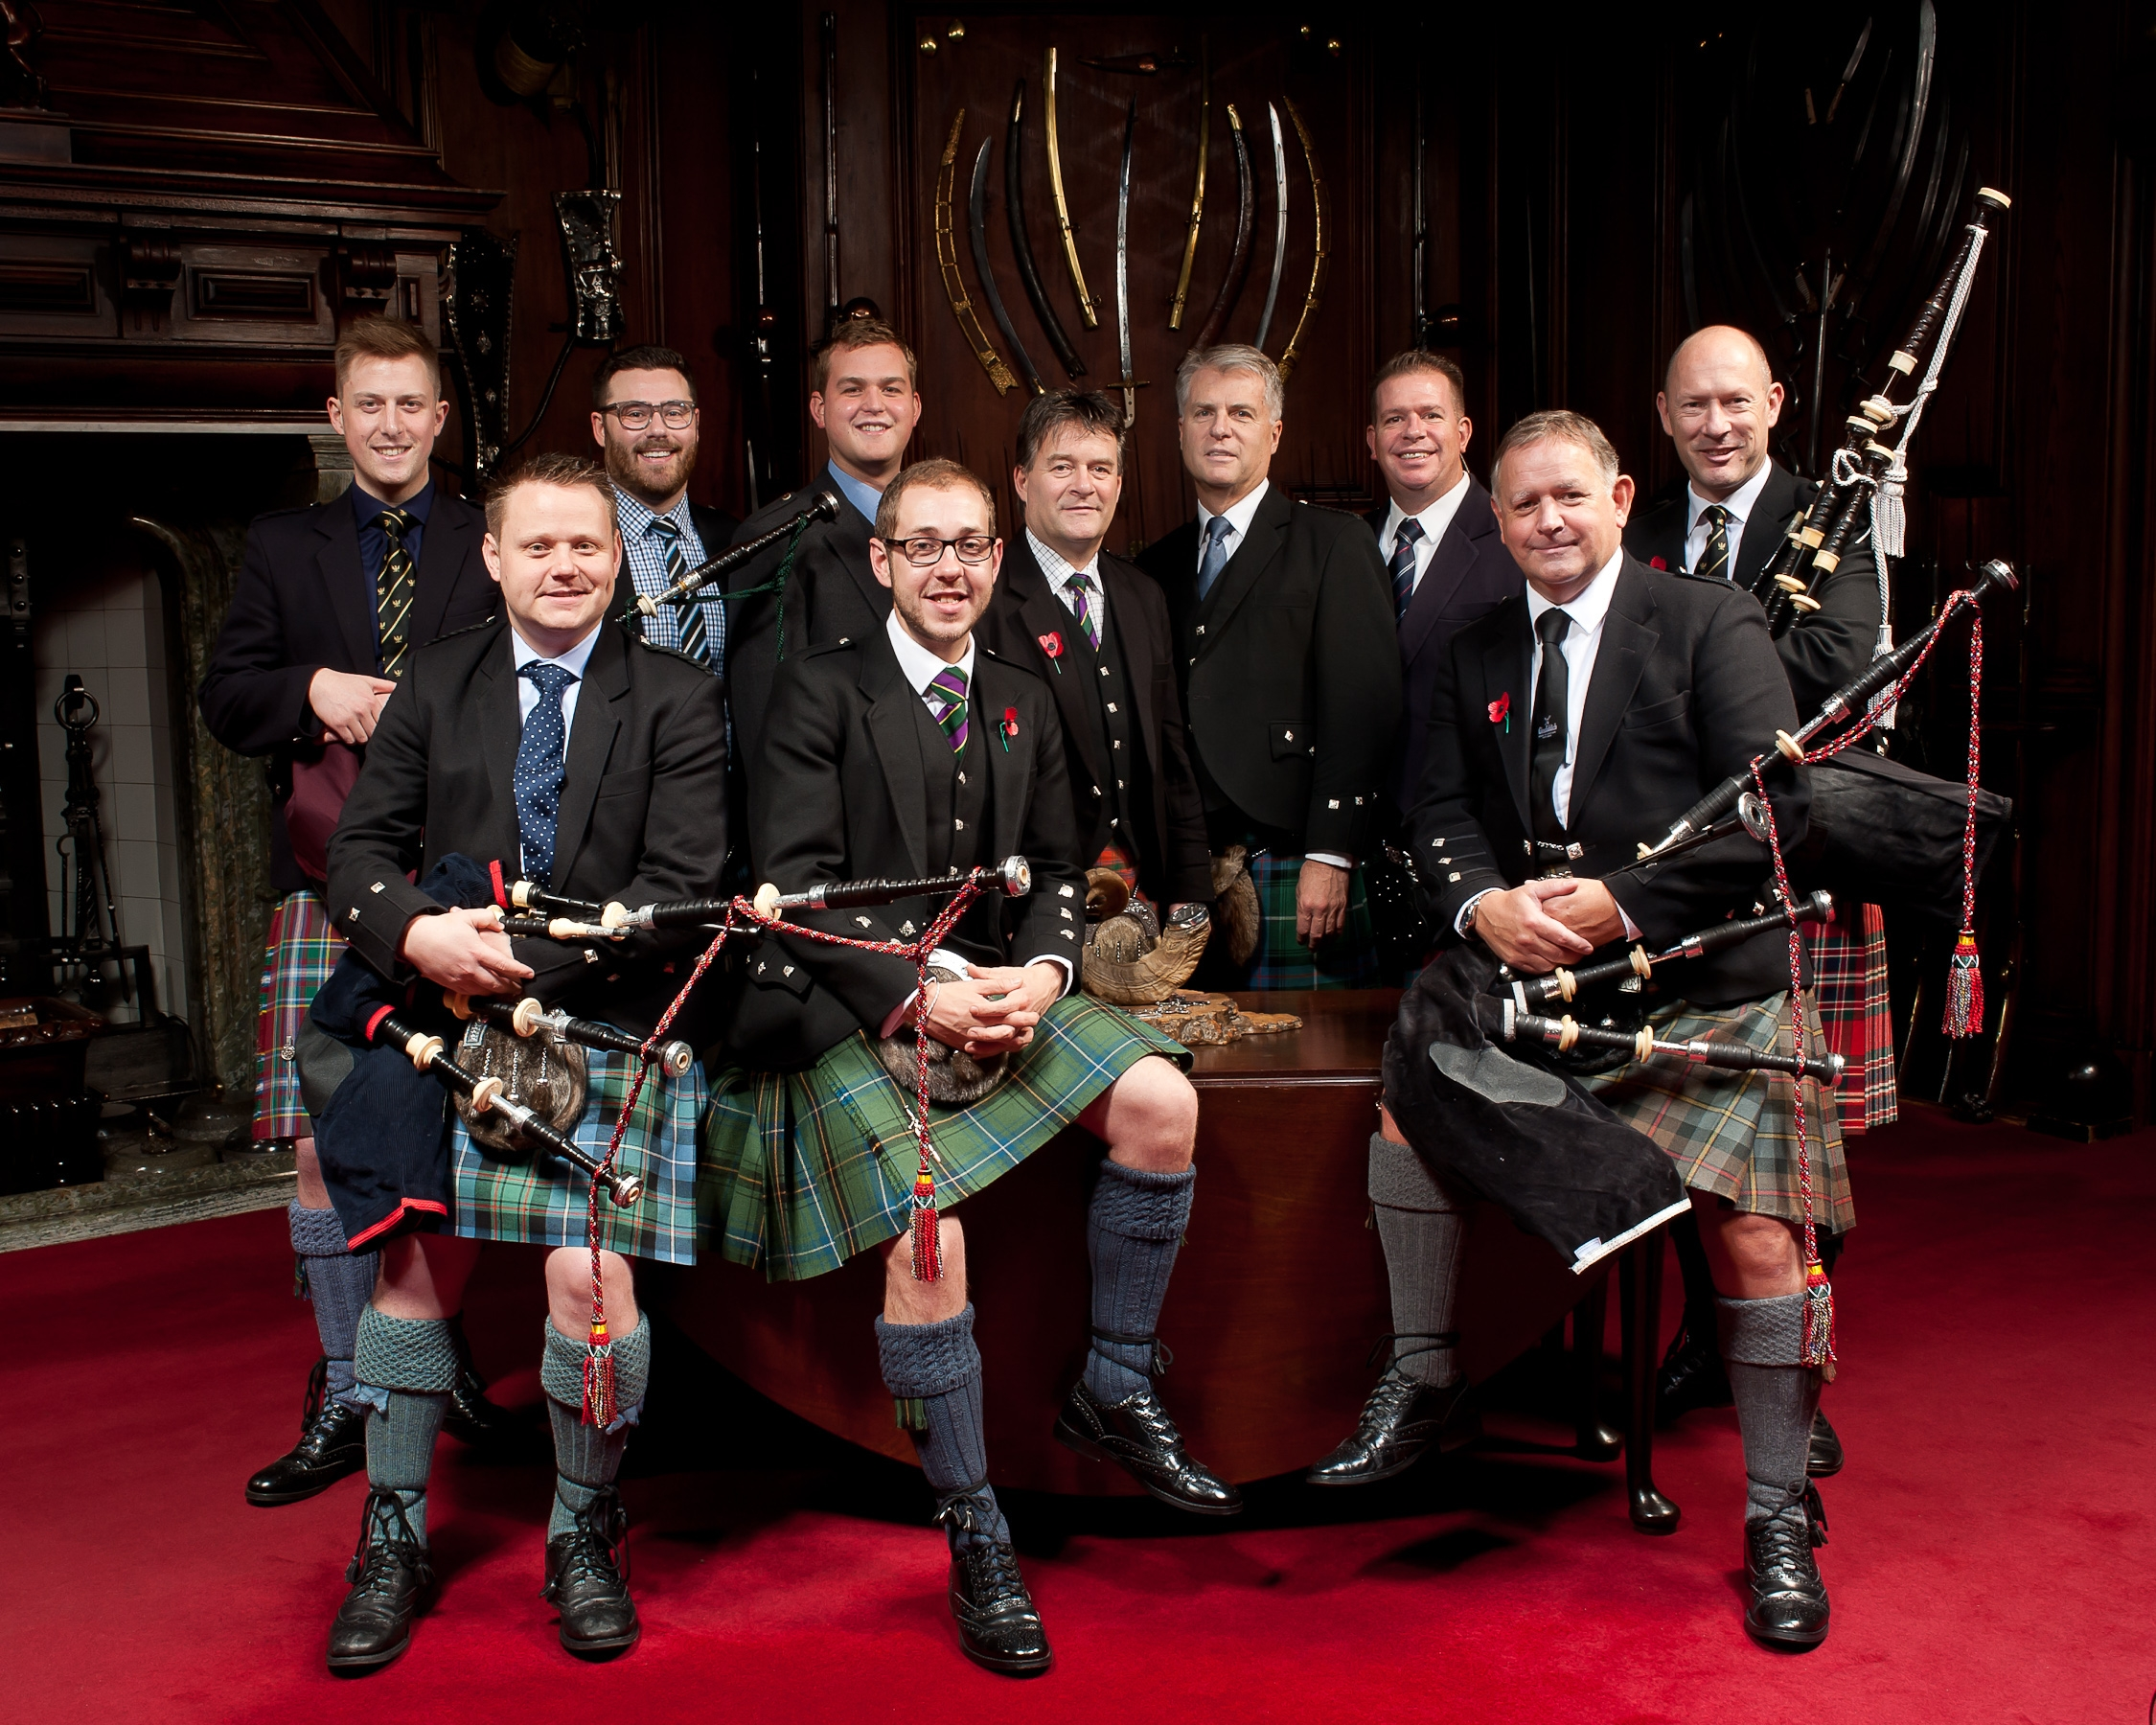 Jack Lee Wins The 44th Glenfiddich Piping Championship photo